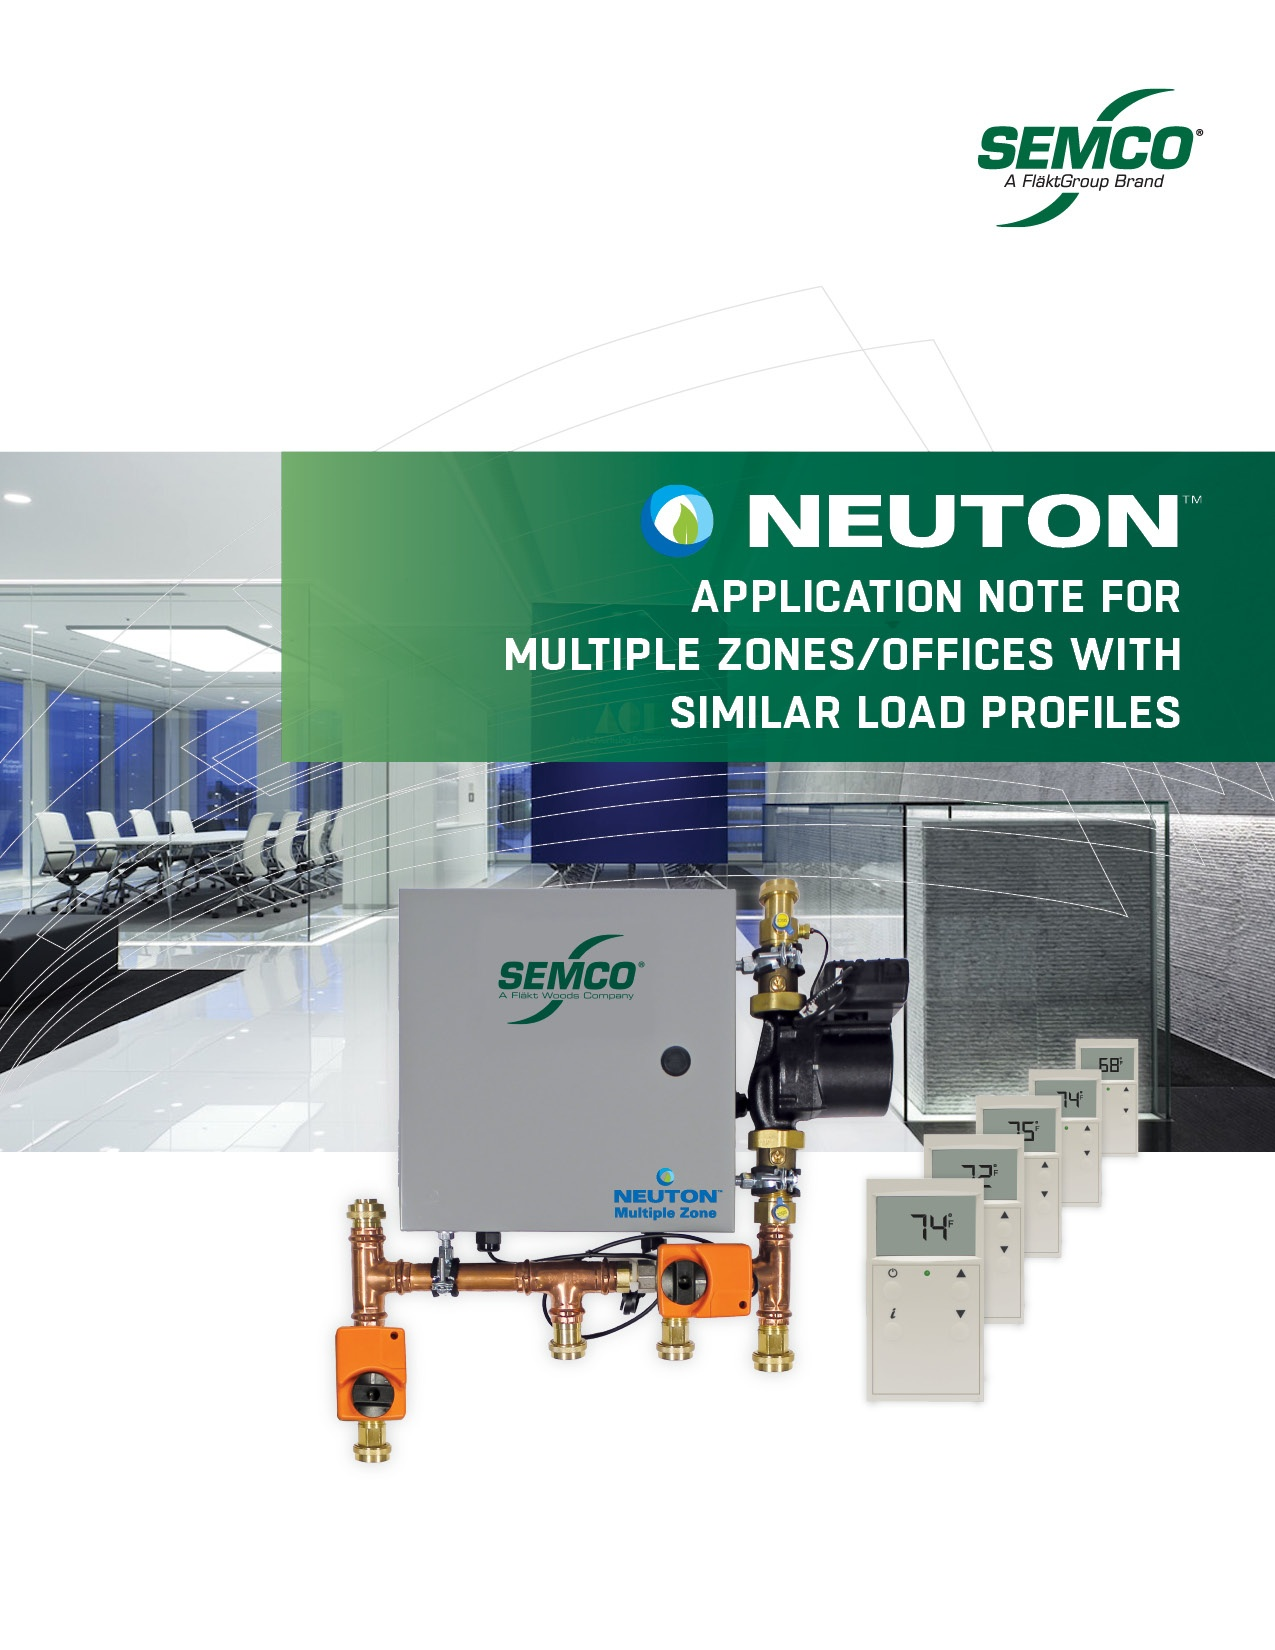 NEUTON Application Note for Multiple Zones - Cover.jpg